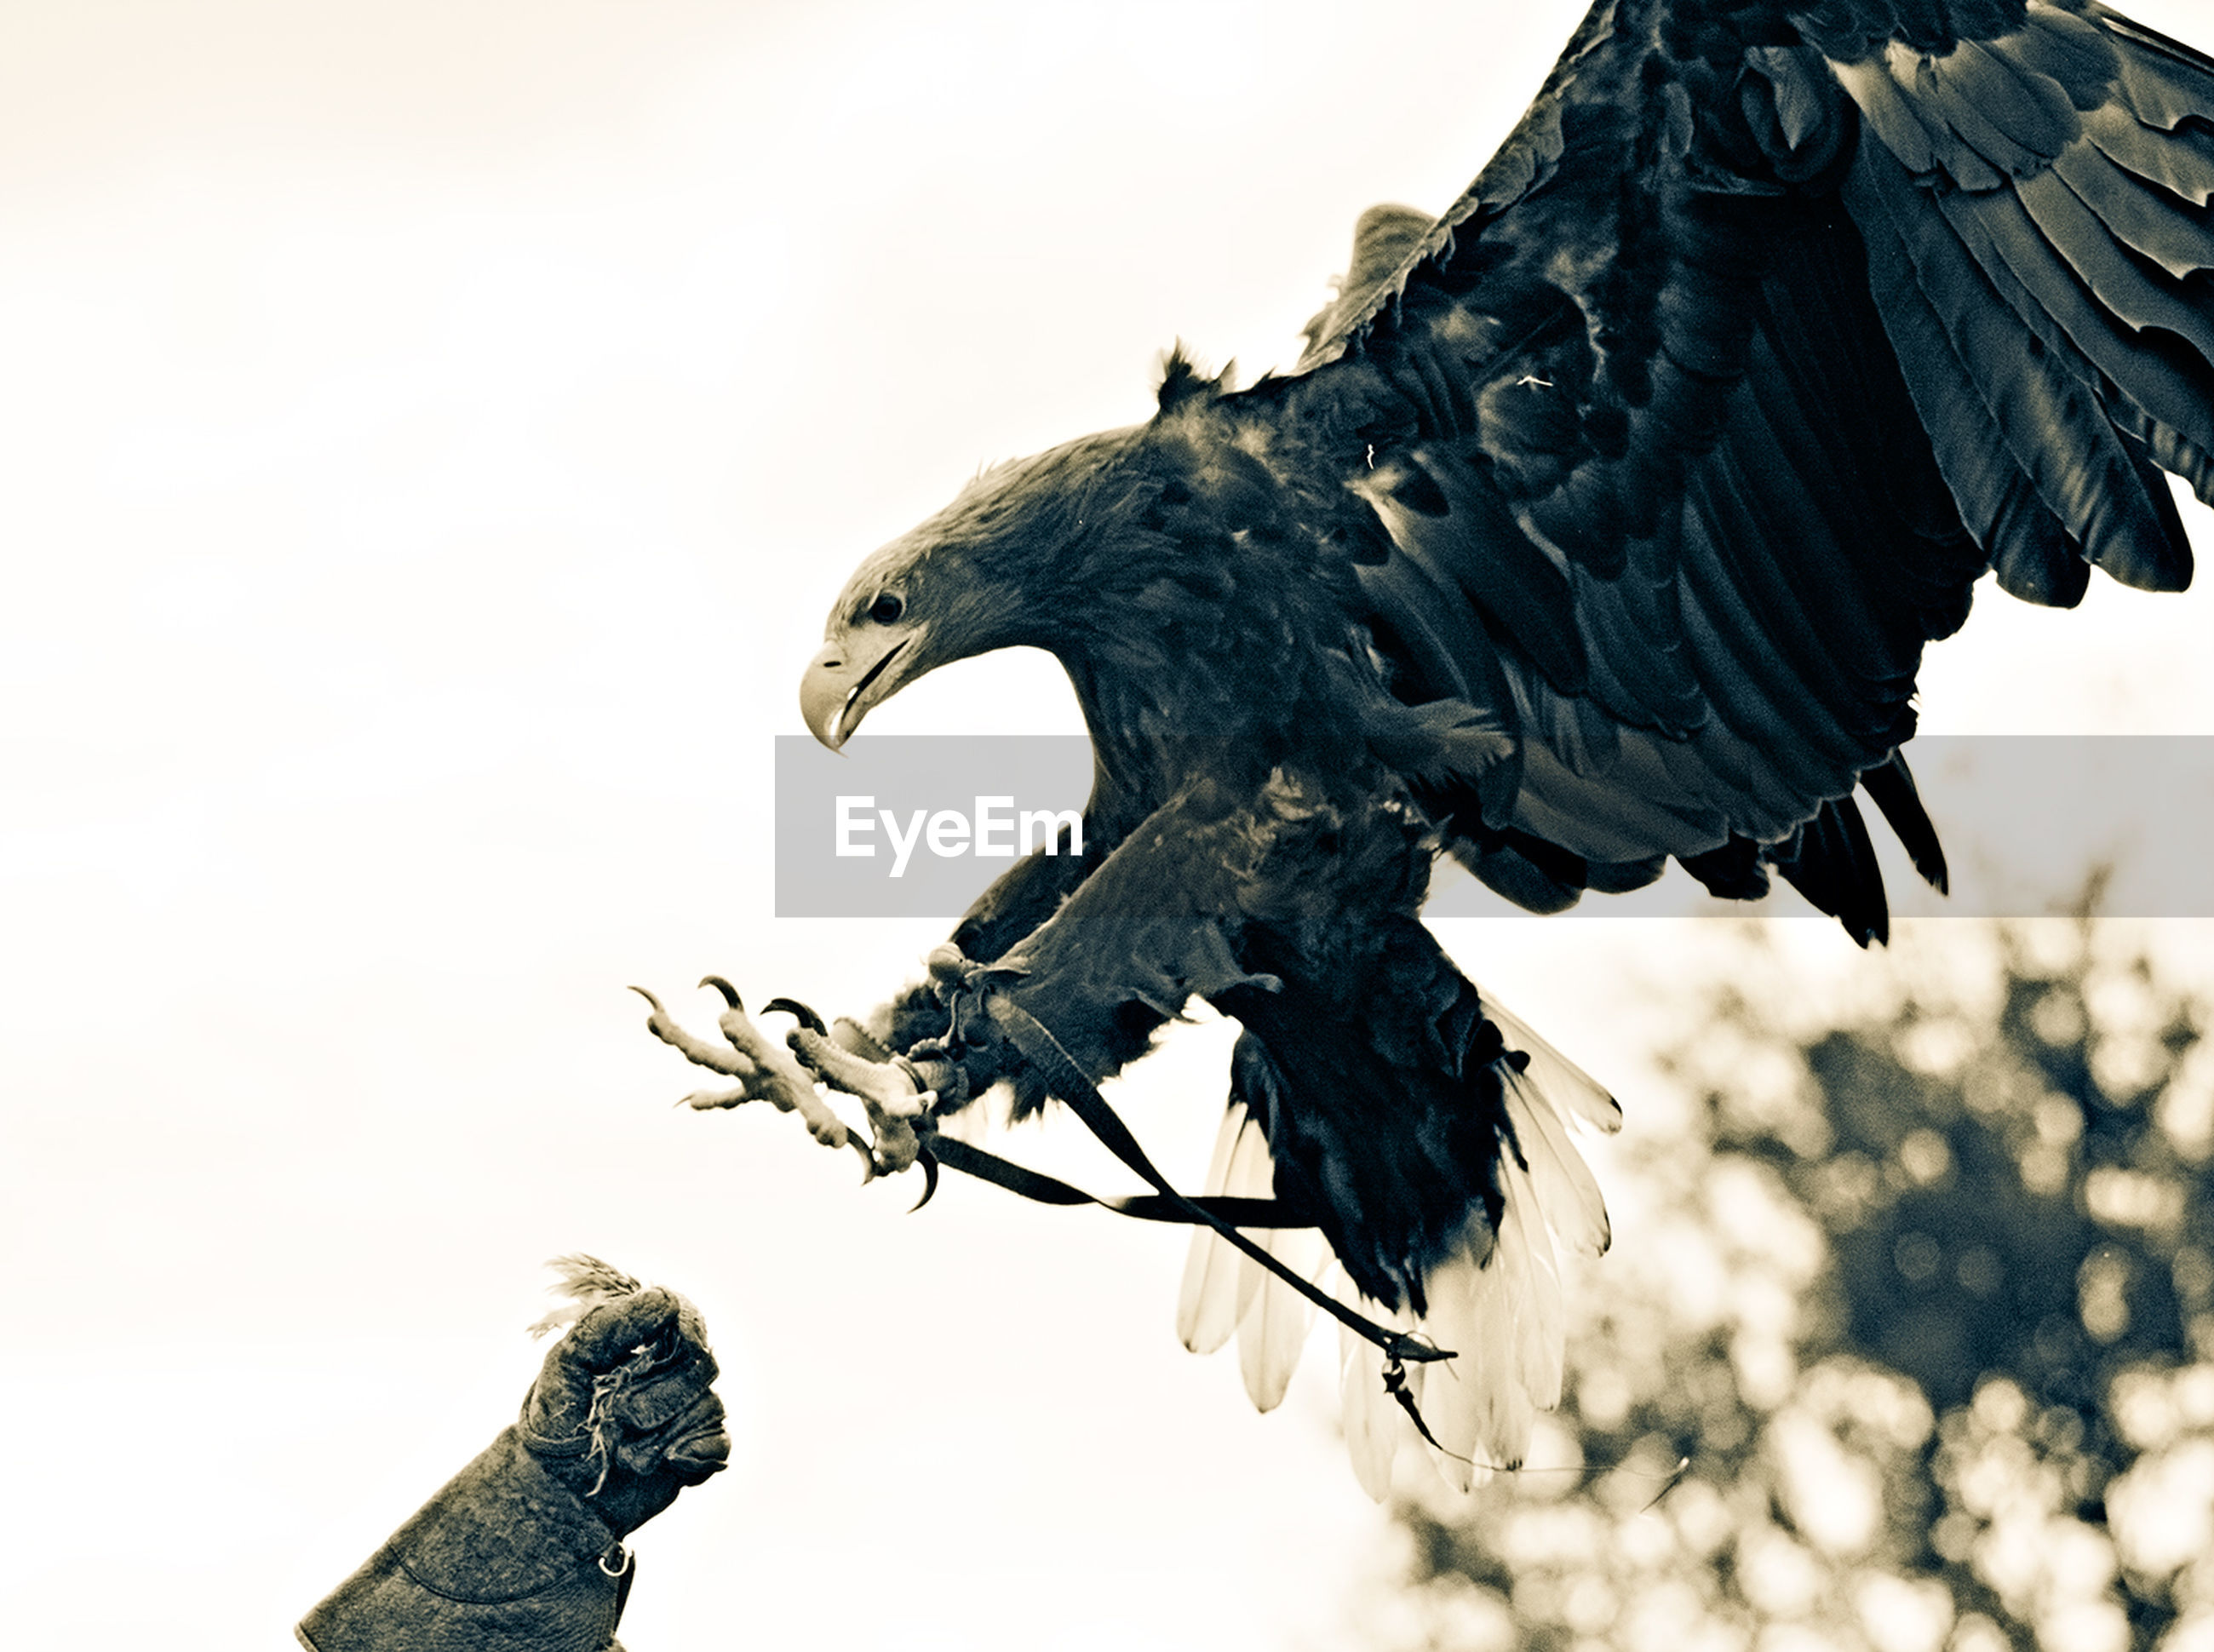 Low angle view of eagle landing on hand against clear sky